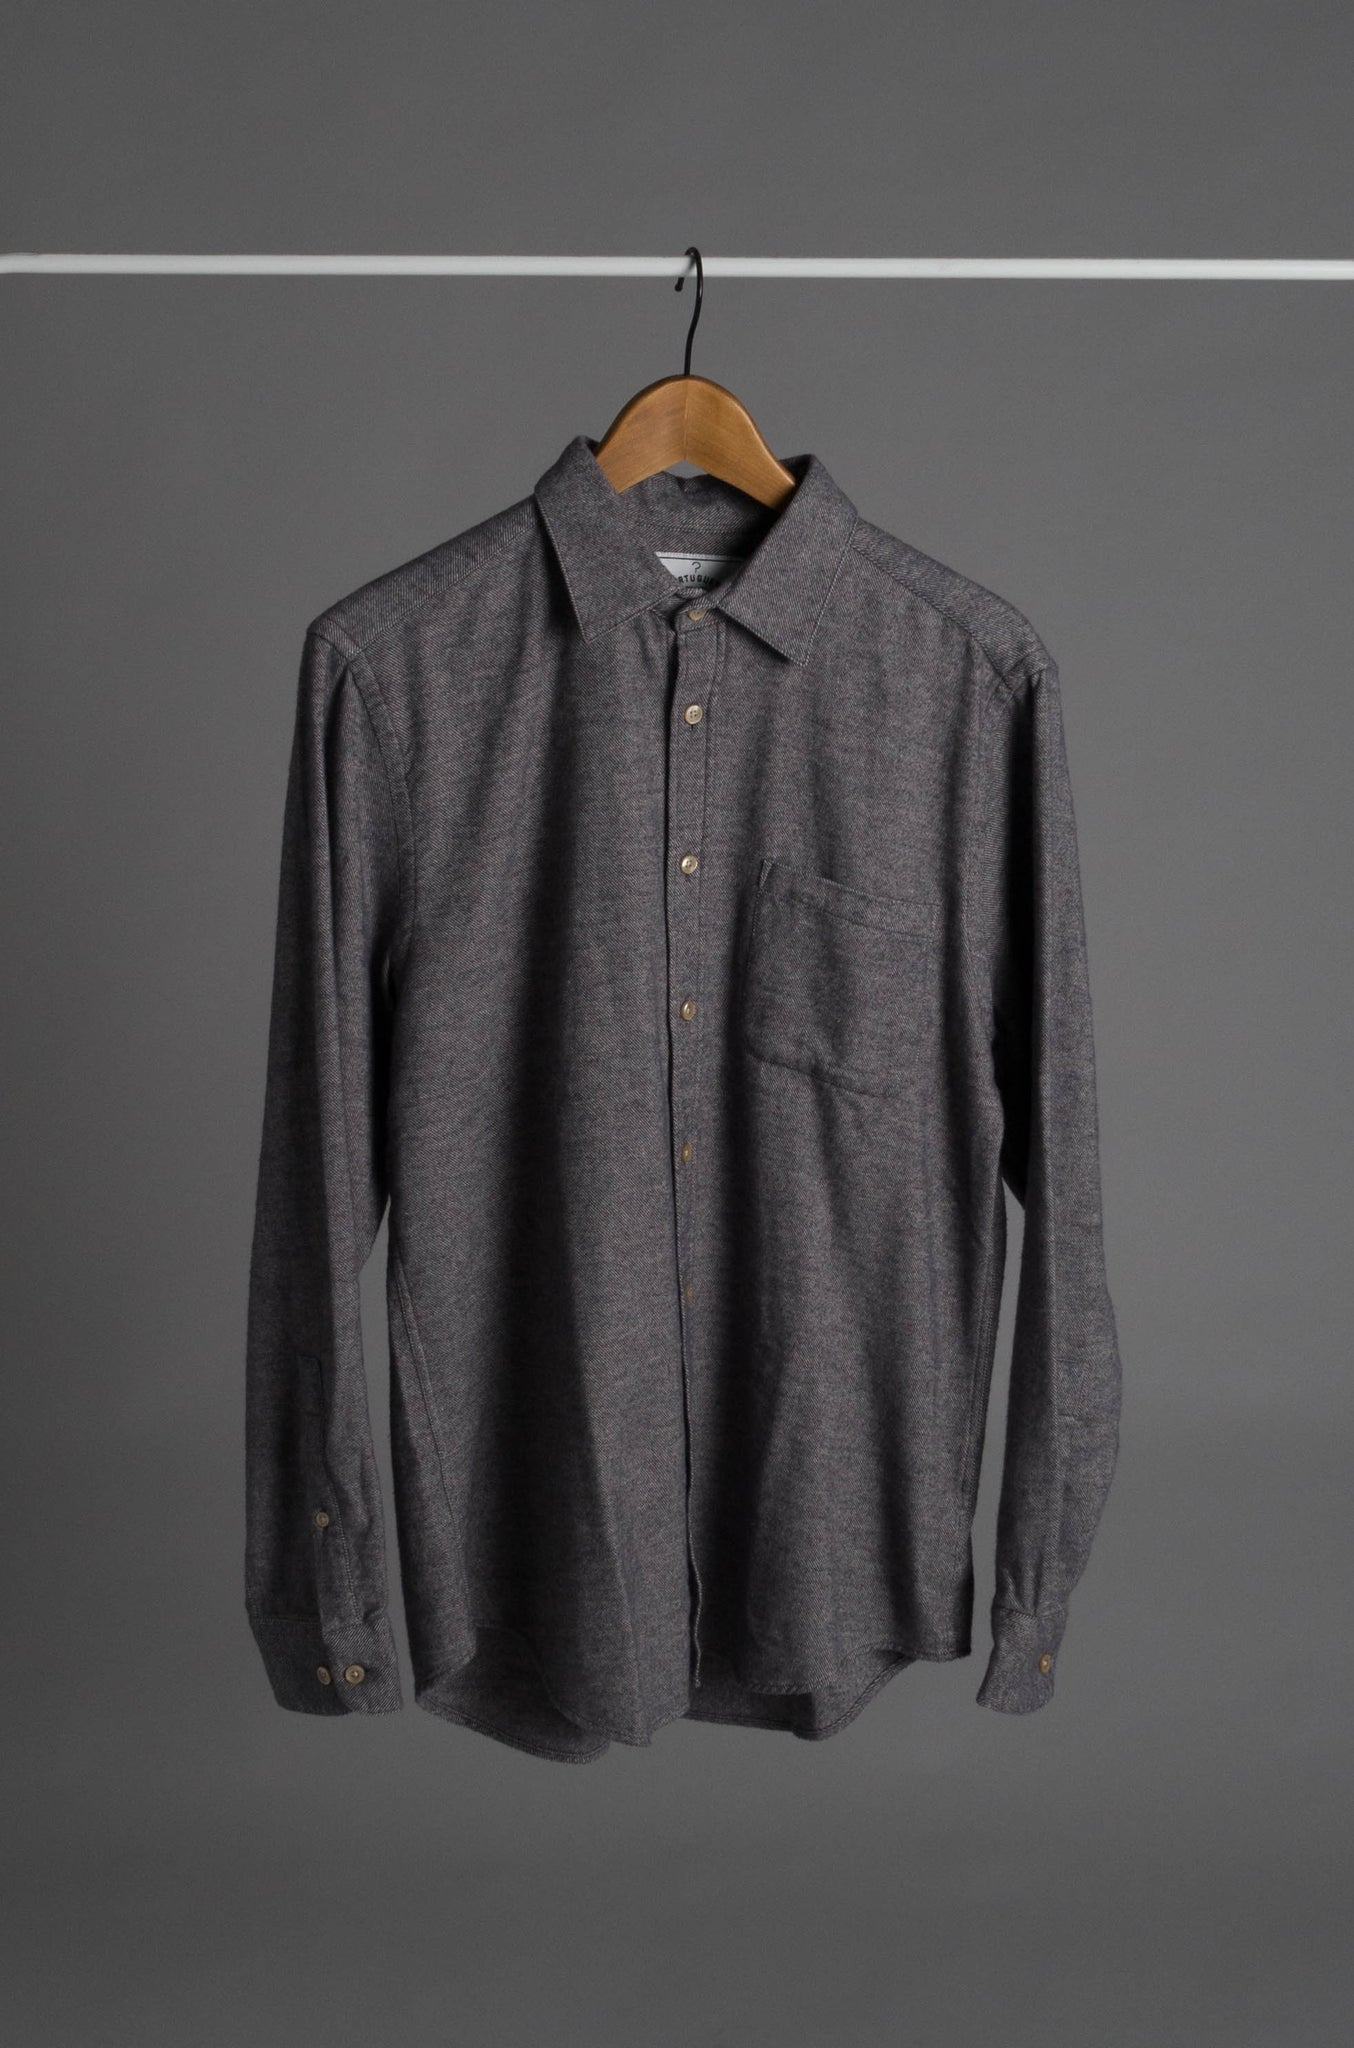 Portuguese Flannel Teca kauluspaita - Light grey